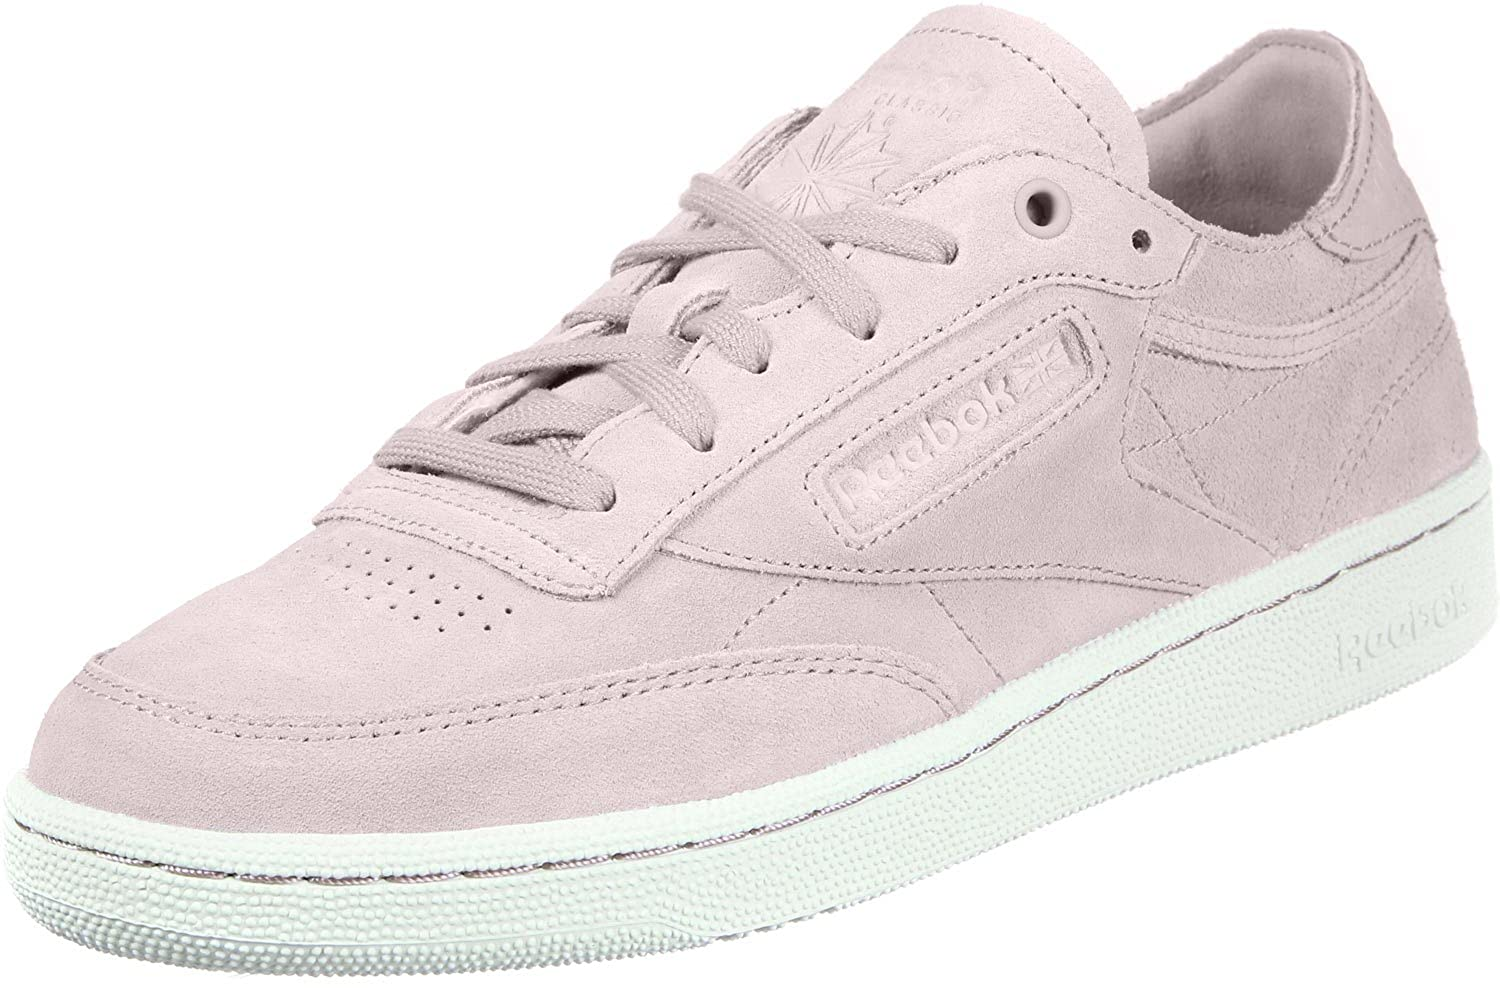 Reebok Club C 85 Fbt Decon Damen Turnschuhe Rosa